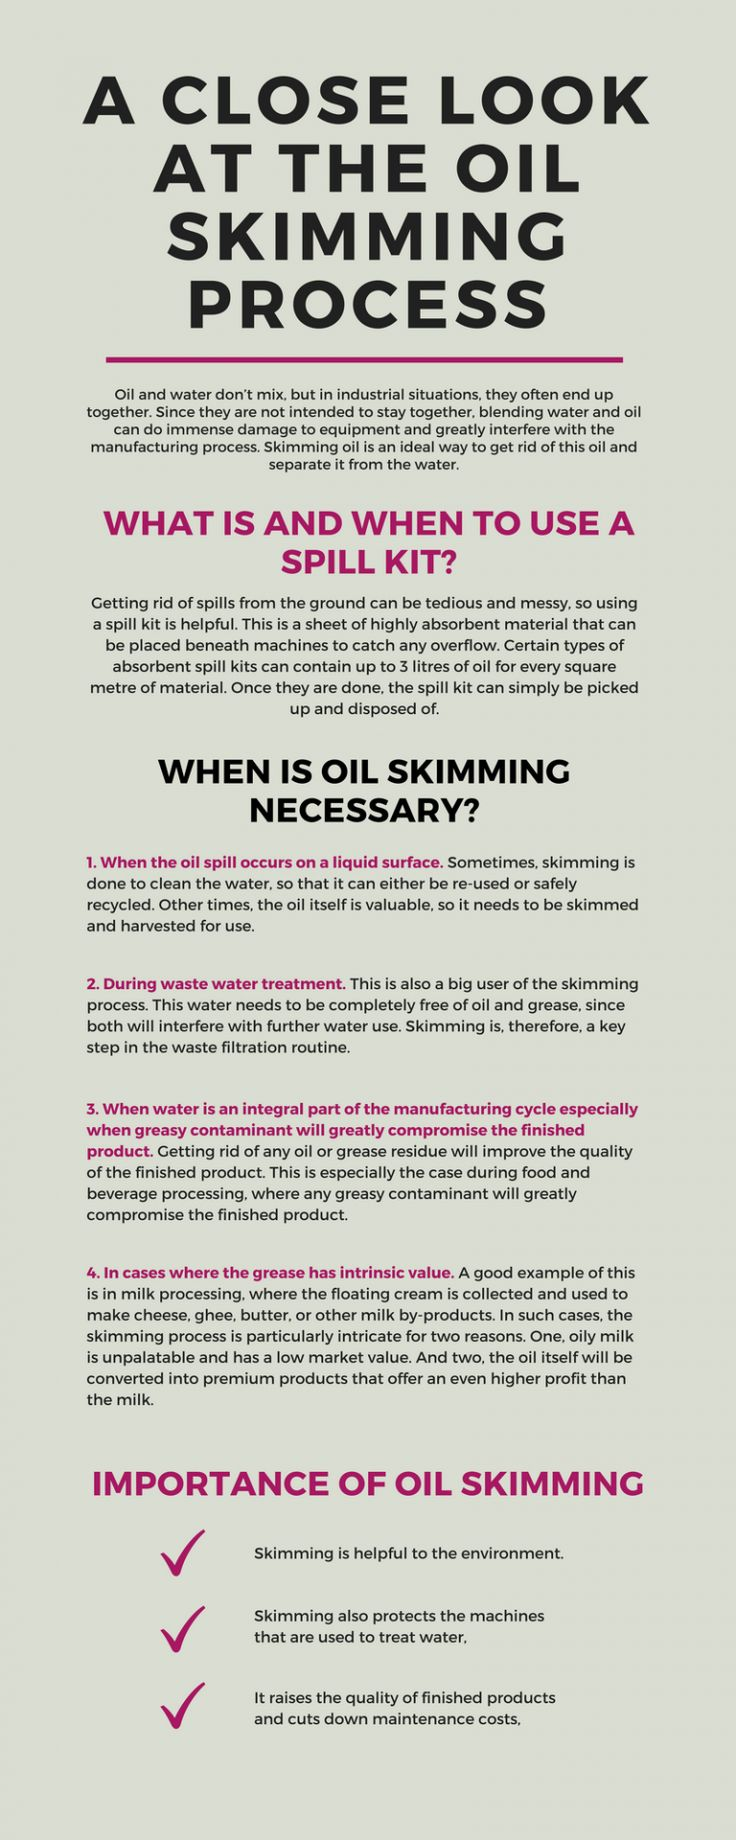 Oil is often regarded as a pollutant in the industrial processes. This is because it can damage equipment and greatly interfere in the process of manufacturing. Skimming oil is the only solution that helps in #liquidfiltration separating oil from the water. Pay a look to this Infographic to know the details.